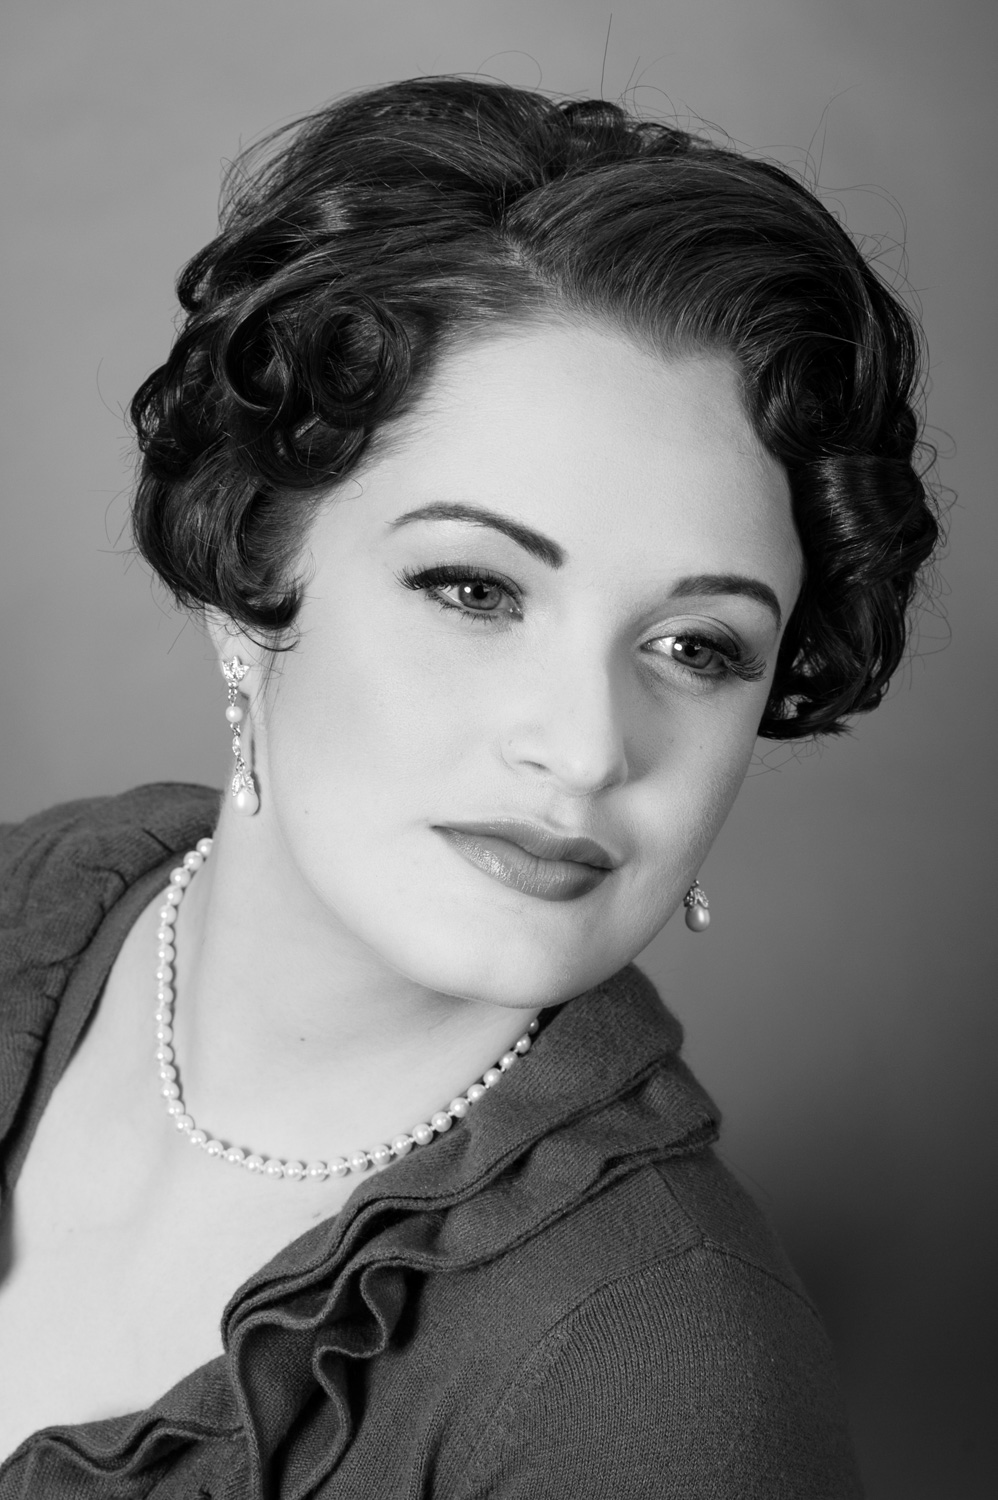 Brett-Dorrian-Minneapolis-Minnesota-Vintage-Makeup-and-Hair-Artist